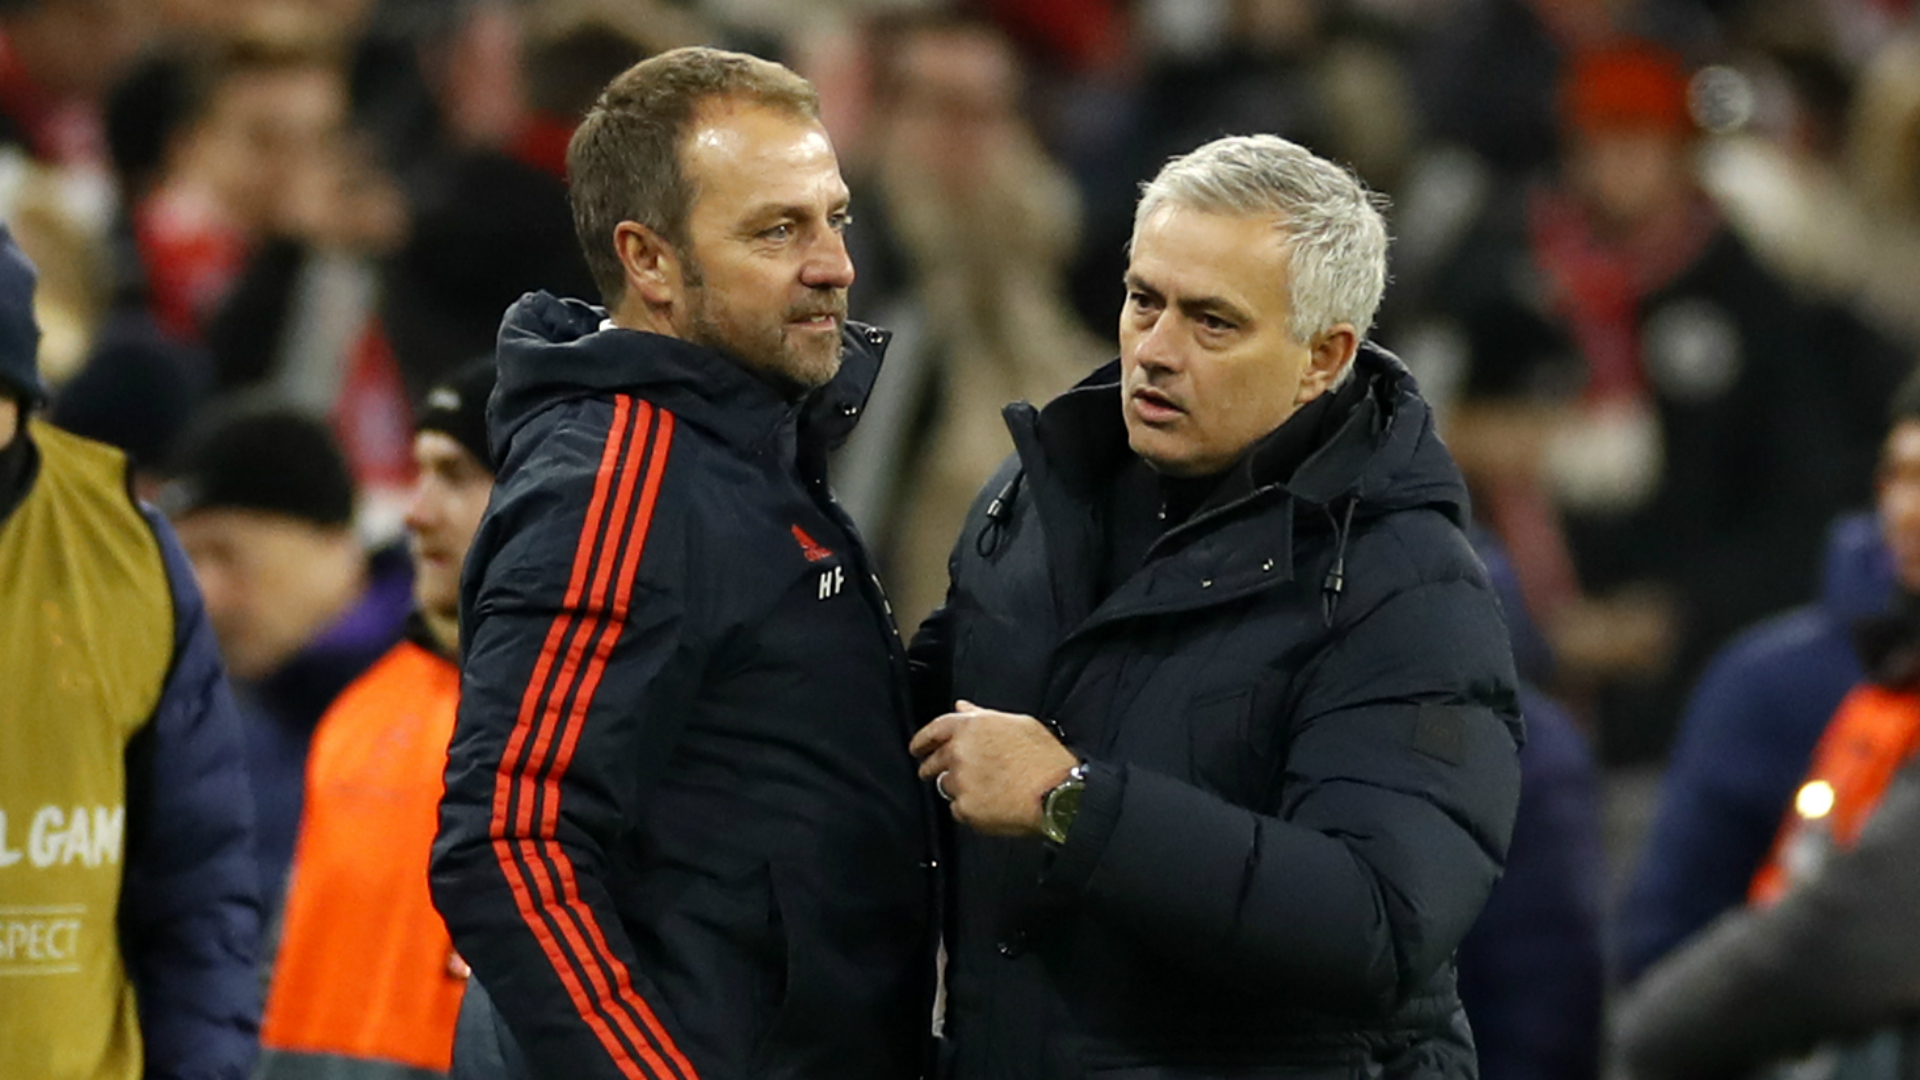 Mourinho: Flick will only win best coach award if Bayern find more competitions to win!